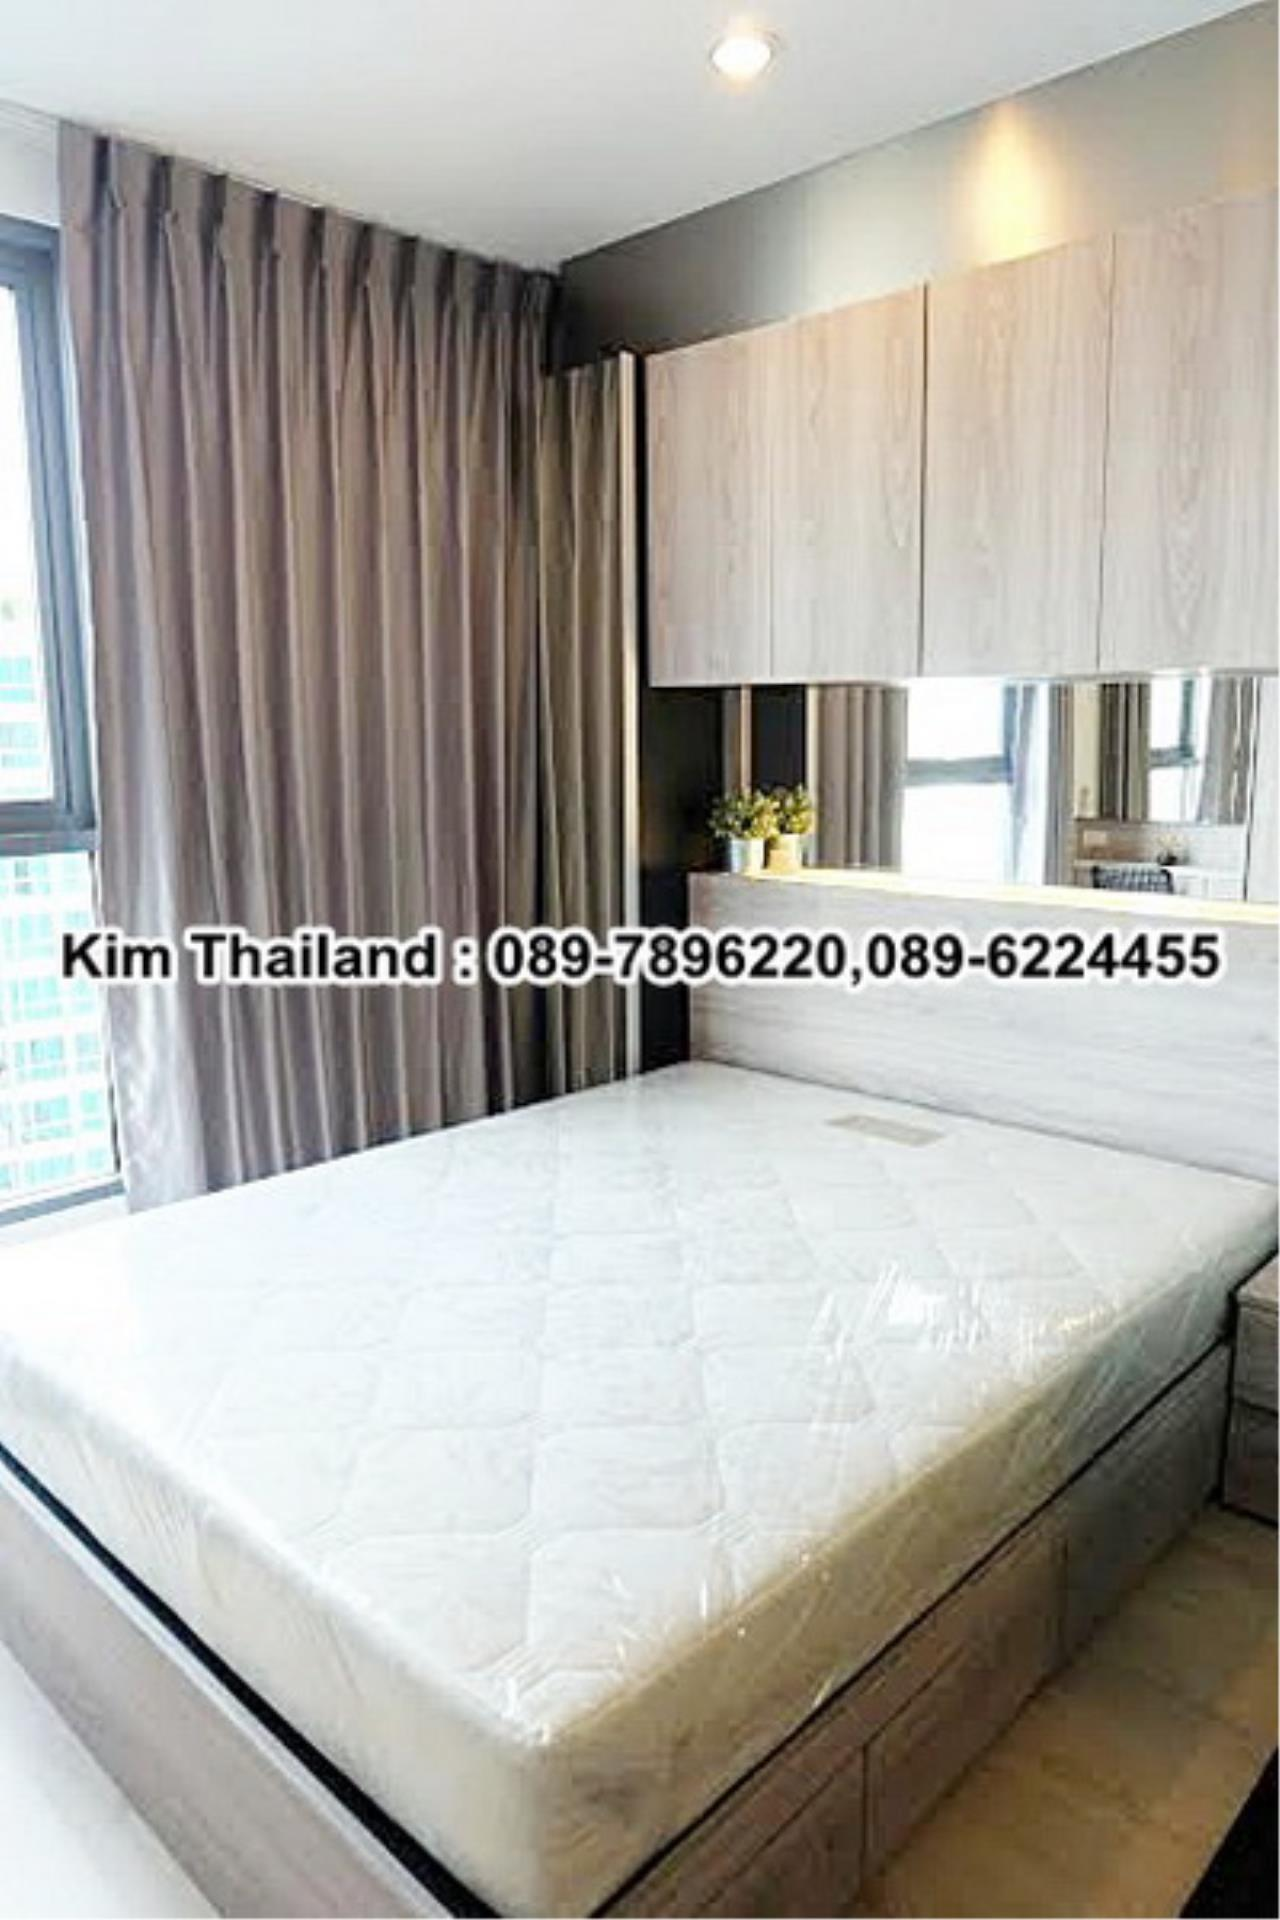 BKKcondorental Agency's Condo for rent,Condo Ideo Q Samyan. Area 29 sqm. 1 bedroom.  Rent 23,000 baht /month. 13